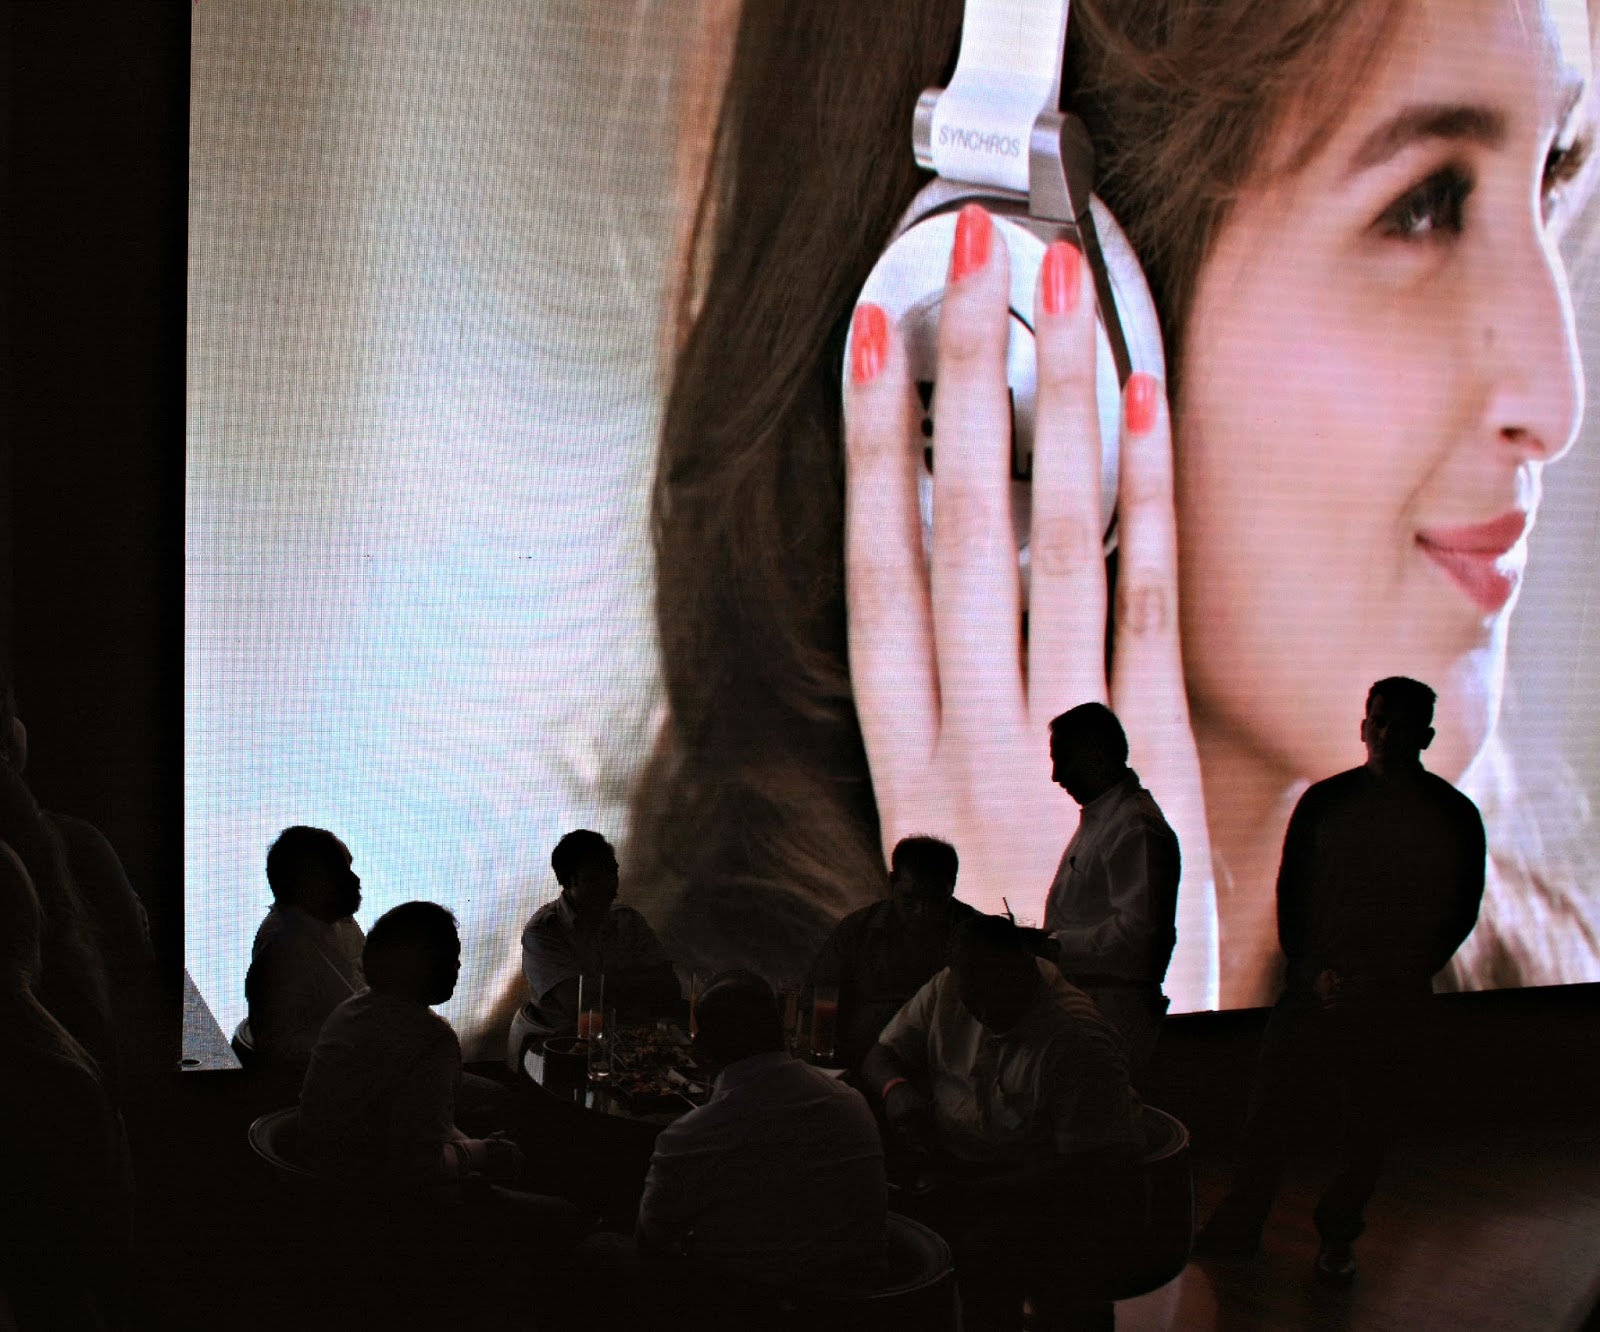 Parineeti Chopra's JBL Ad playing at JBL Just Be Loud Party